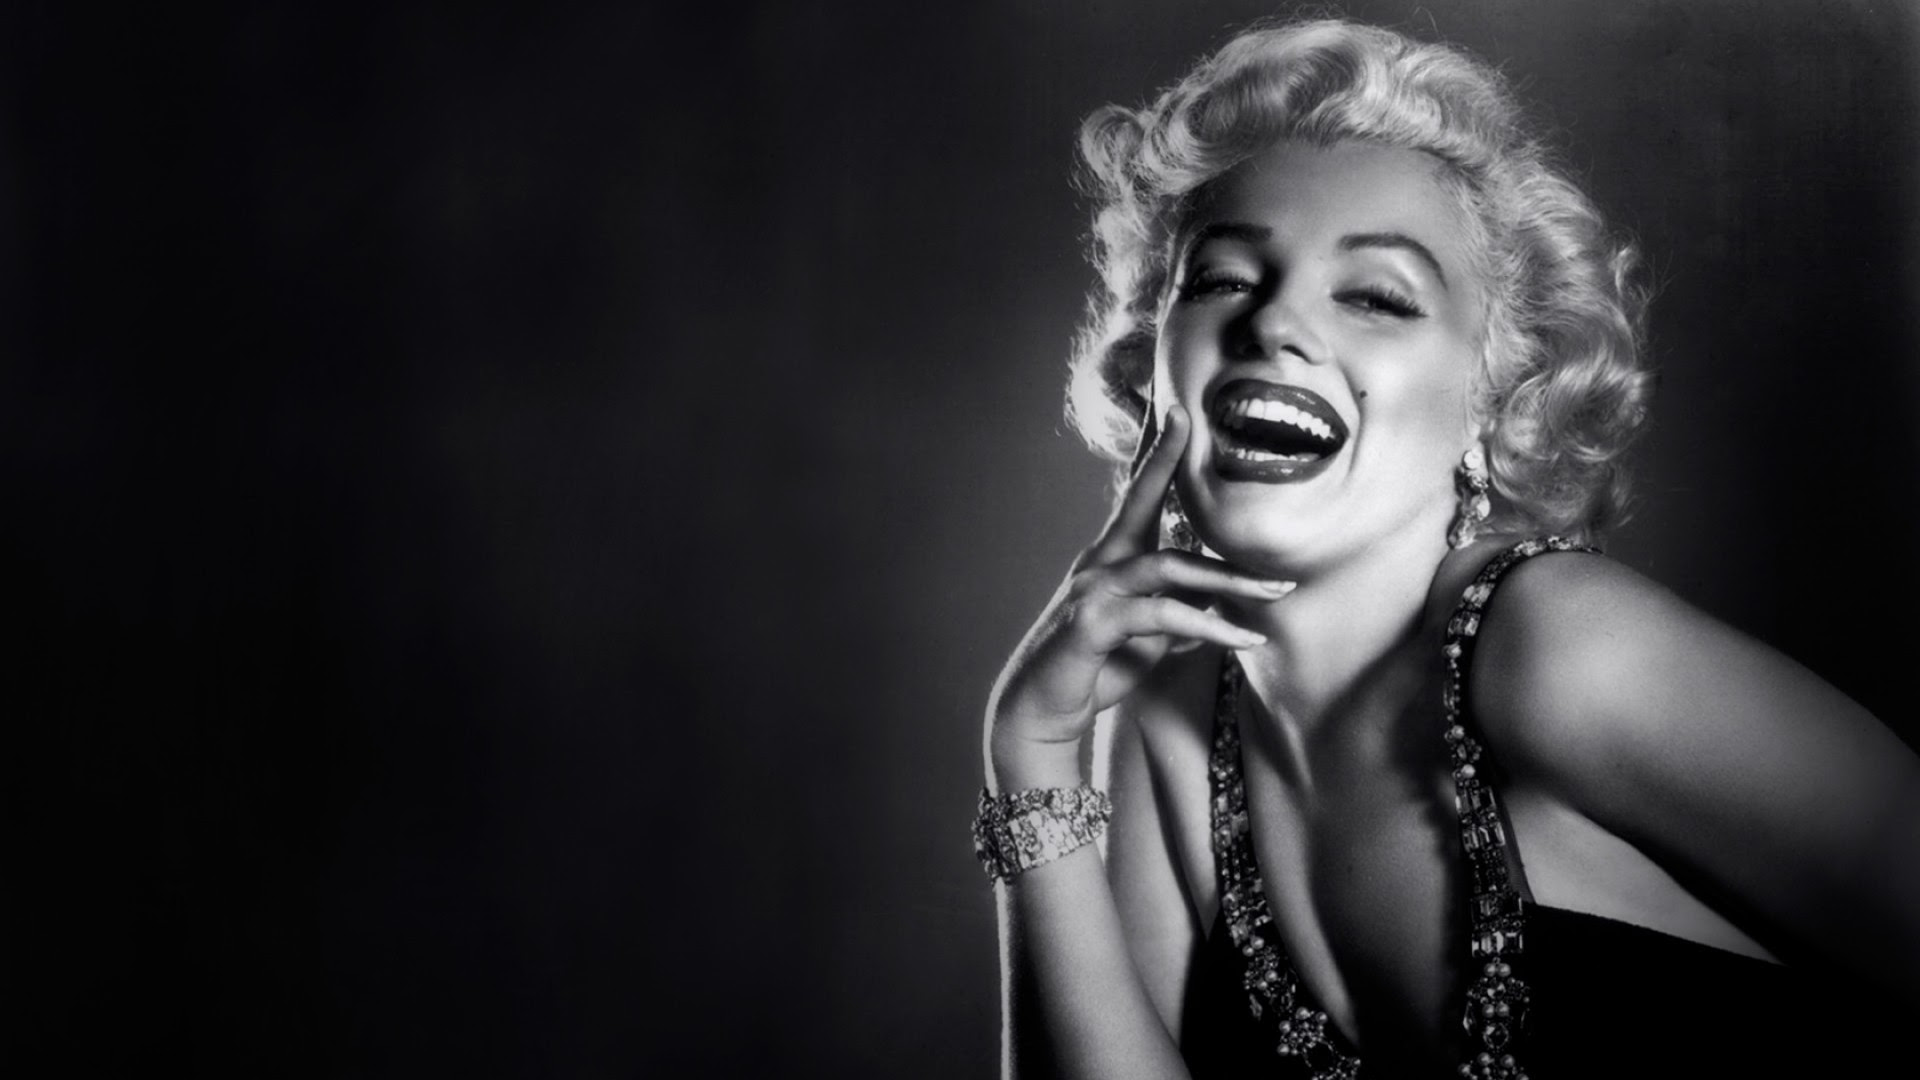 Marilyn Monroe Wallpaper 1920x1080 50239